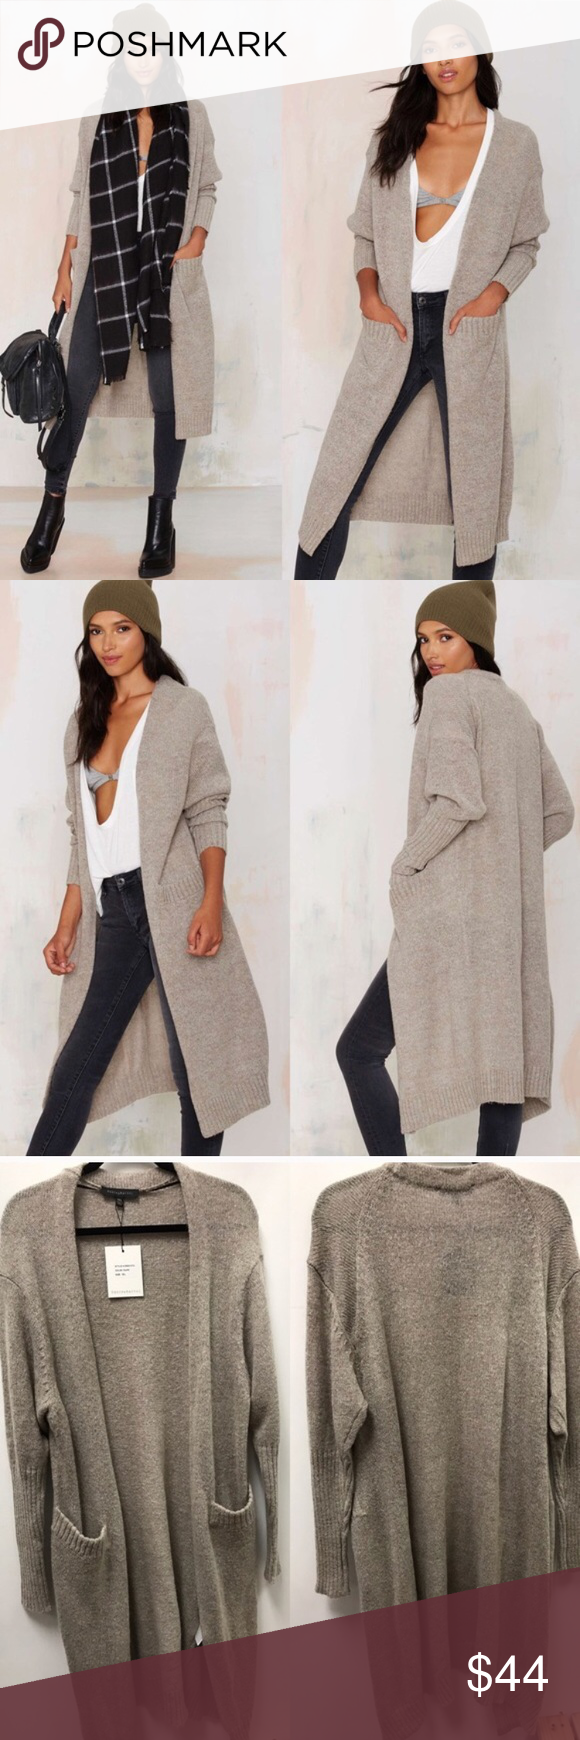 Nasty Gal so heated duster cardigan Hot as hell! This duster cardigan is wool mix knit in taupe.15% wool 30% nylon 47% acrylic 8% mohair.  A fitted forearm keeps this over sized cardigan feminine, while the duster length is reminiscent of menswear inspired coats. Made by dance and marvel sold out at nasty gal Nasty Gal Sweaters Cardigans